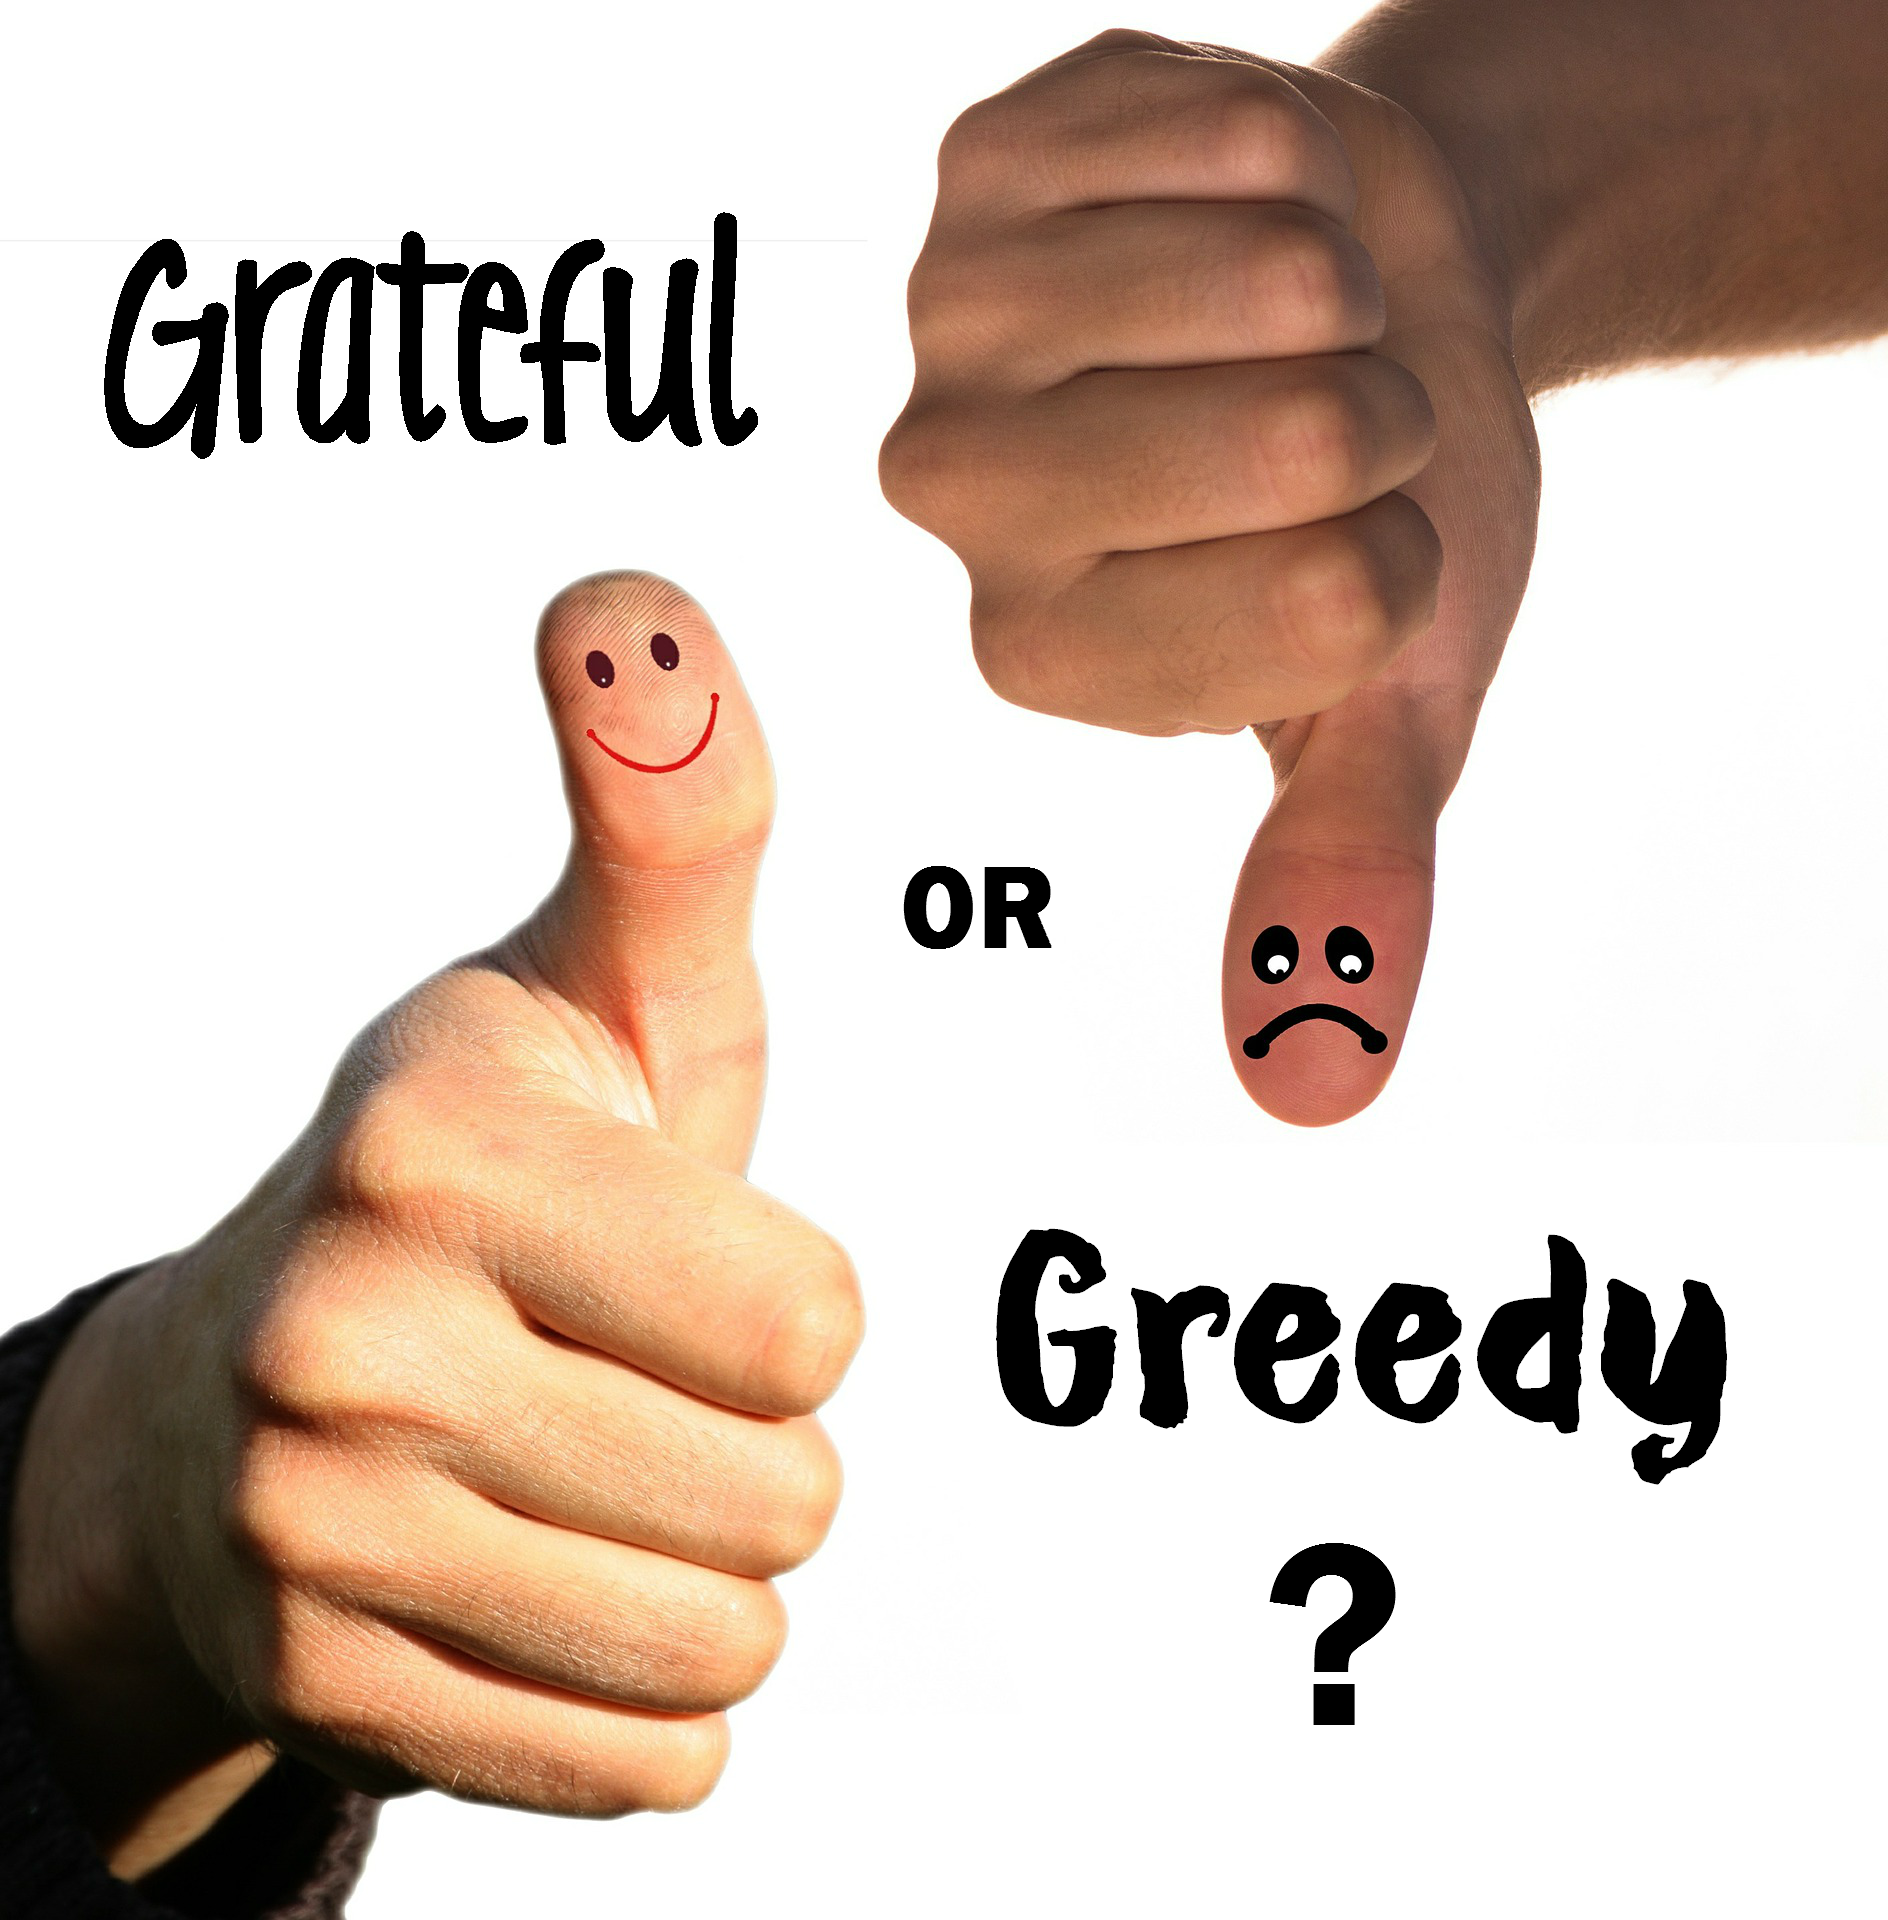 grateful-or-greedy